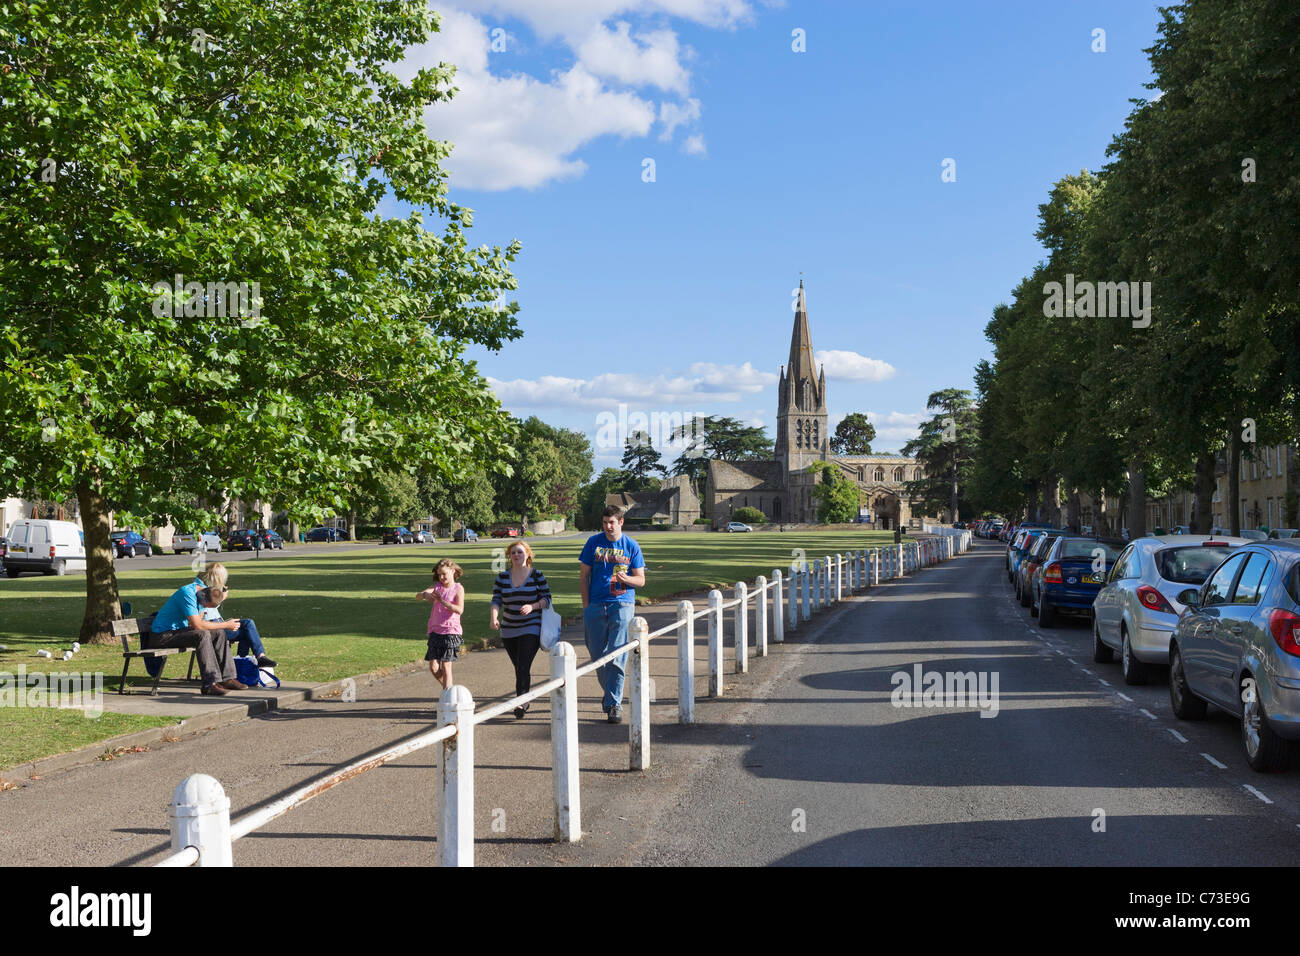 Church Green in the centre of Witney, Oxfordshire, England, UK - Stock Image